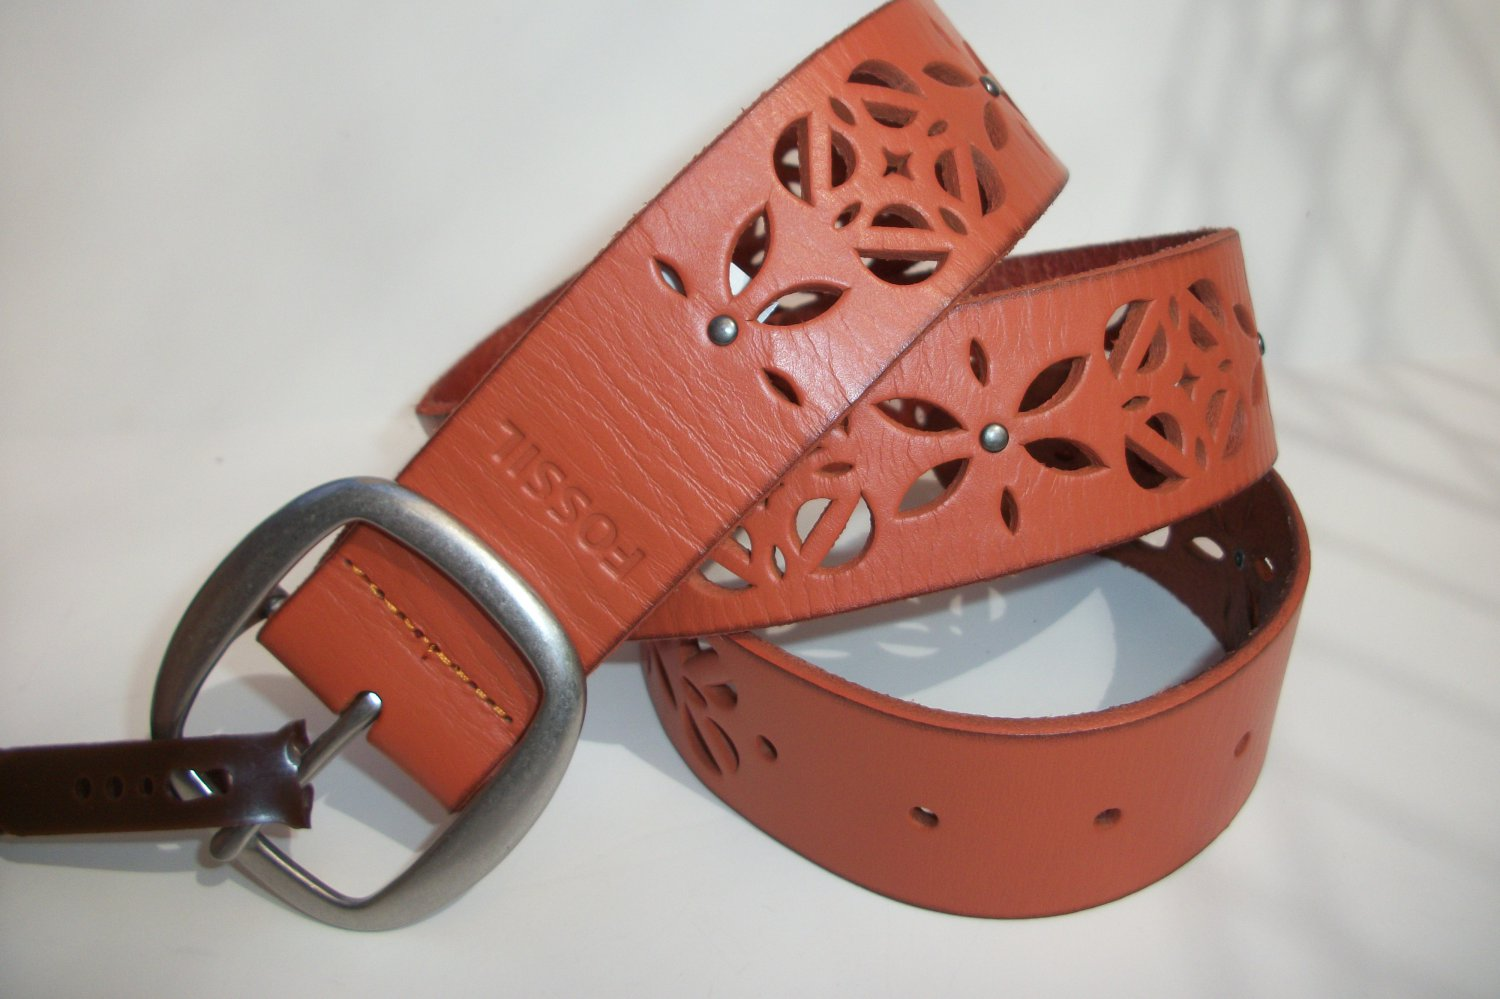 Fossil Brand Signature Floral Cut Out Perforated Leather Belt Light Orange